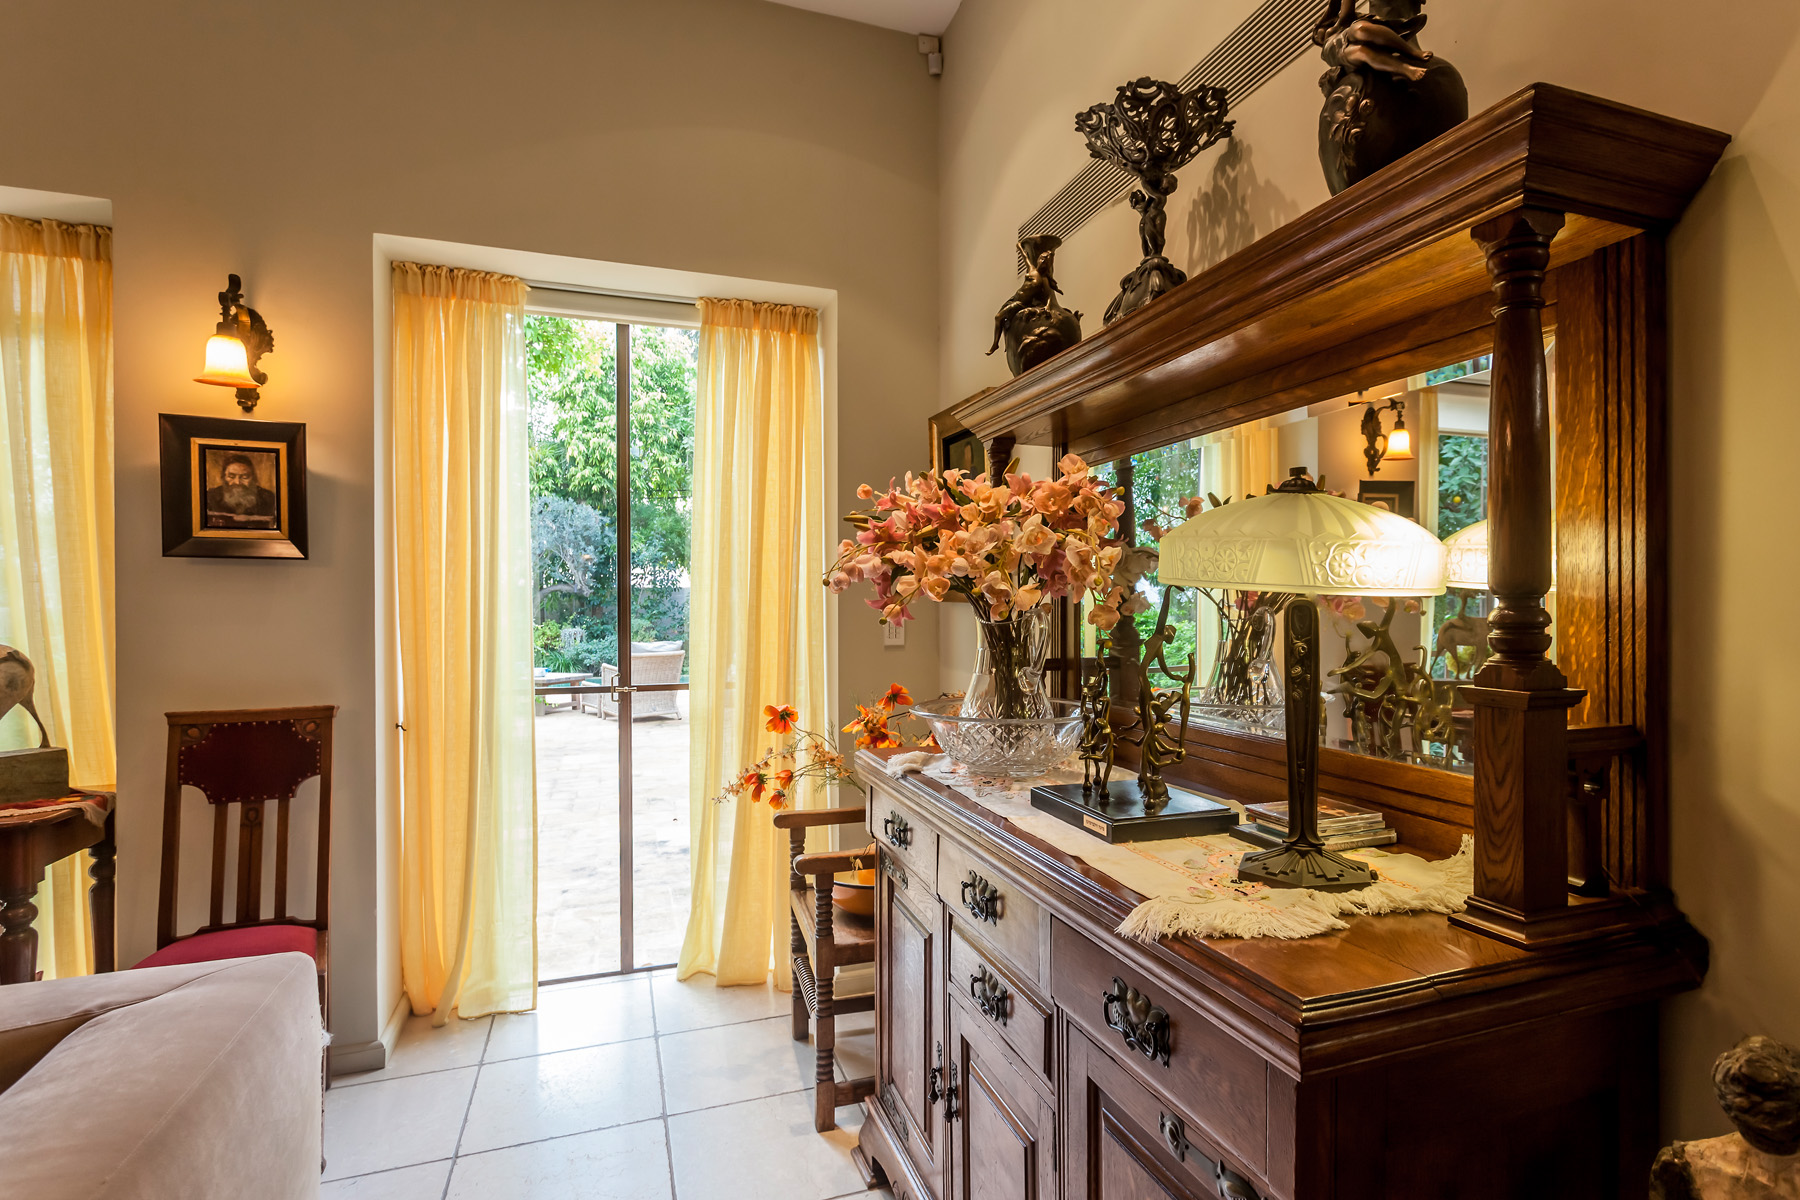 Additional photo for property listing at An Eclectic Antique Style Home Tel Aviv, Israel Israël